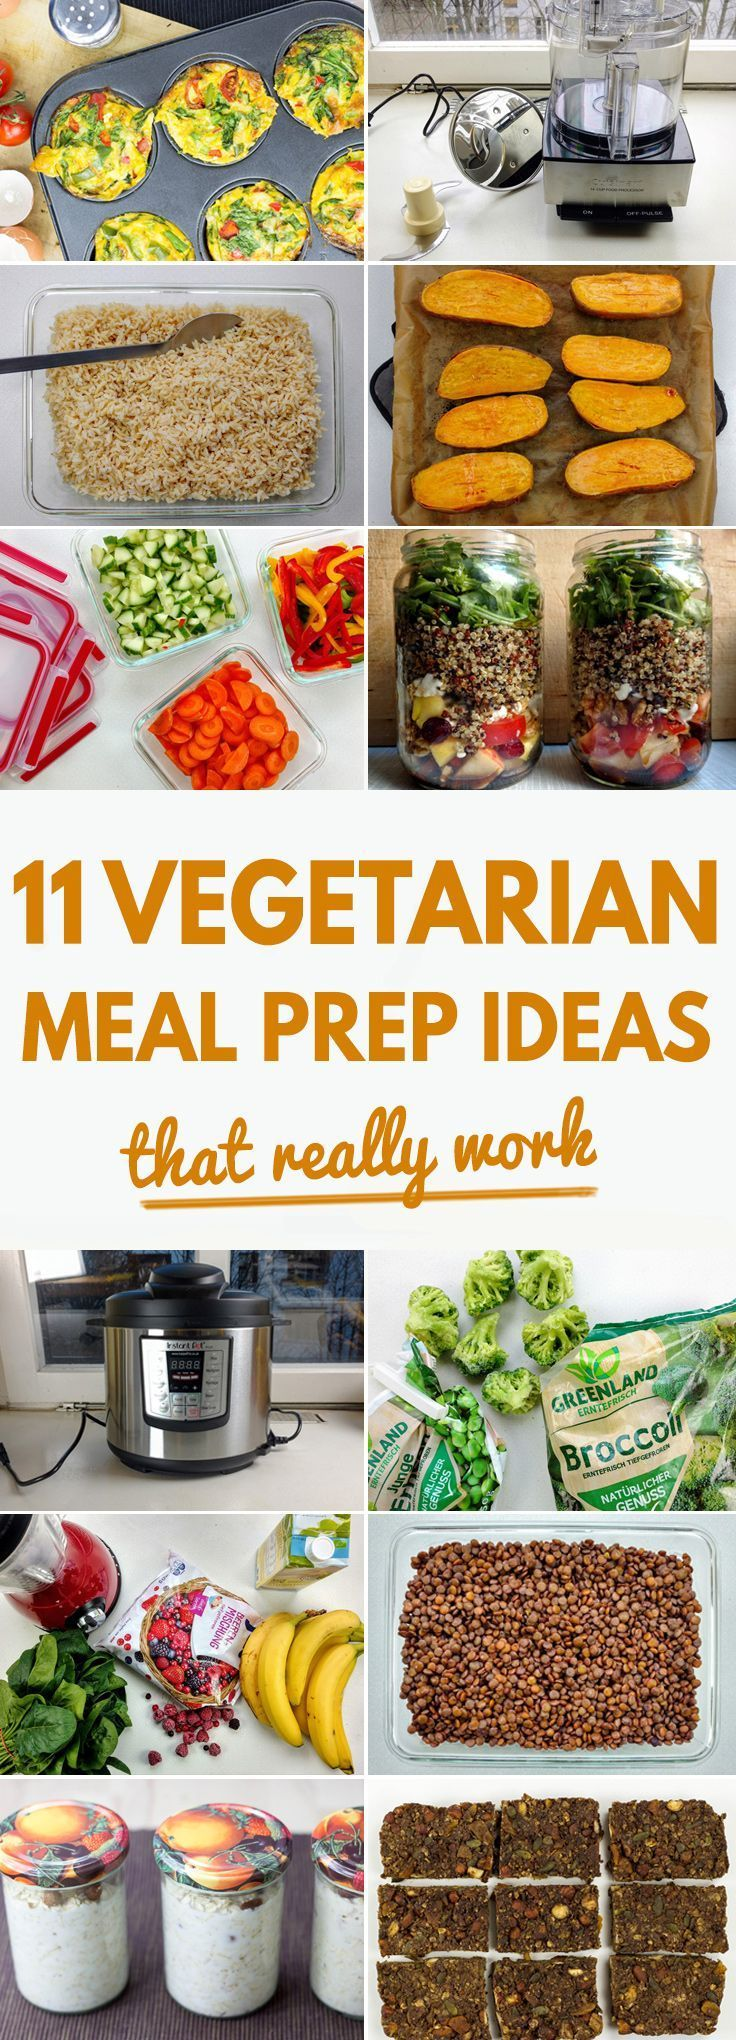 11 Vegetarian Meal Prep Ideas That Really Work | hurrythefoodup.com *veganize